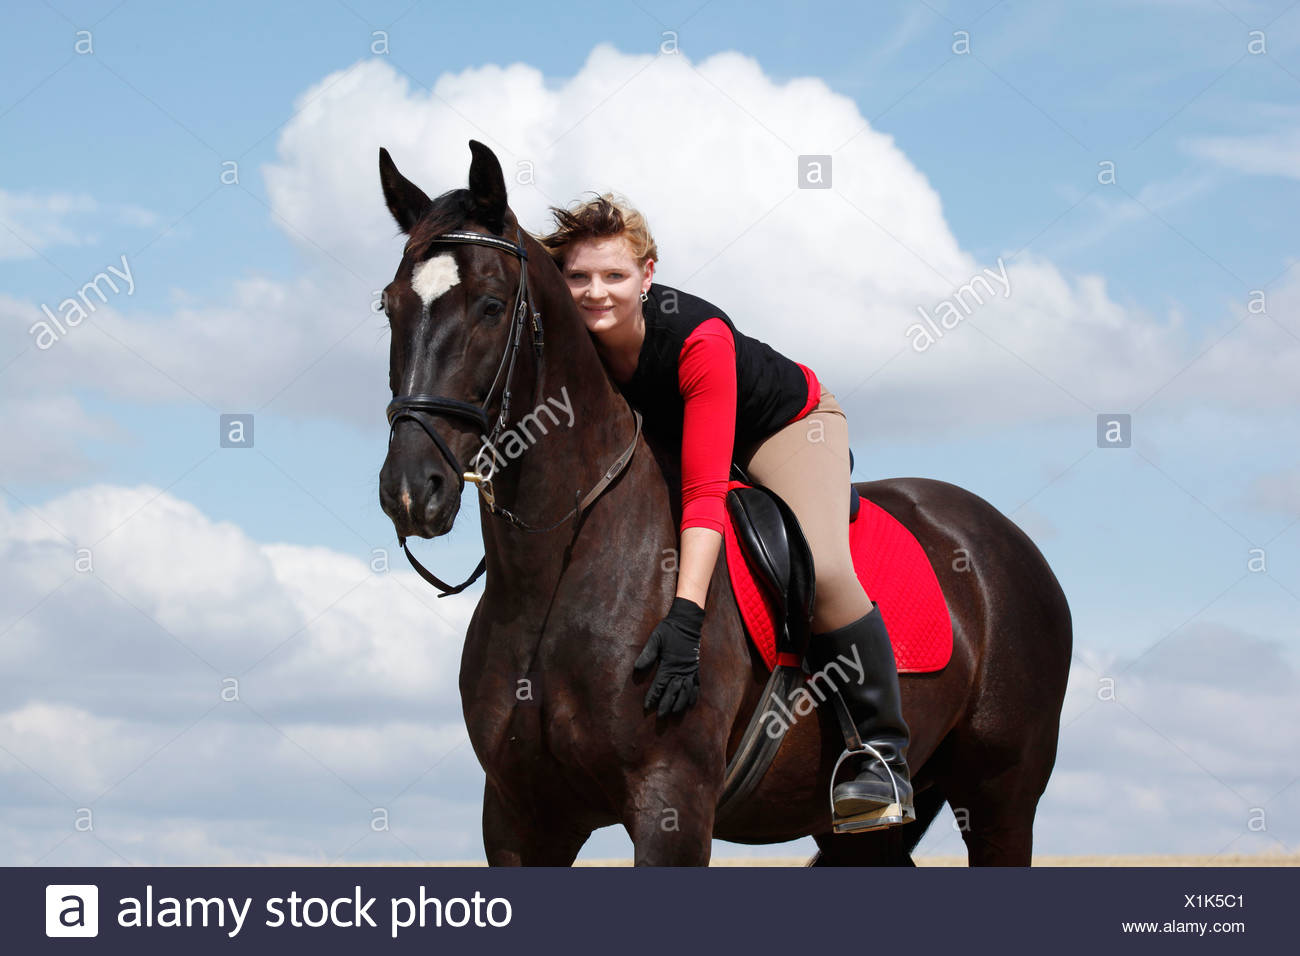 riding woman - Stock Image